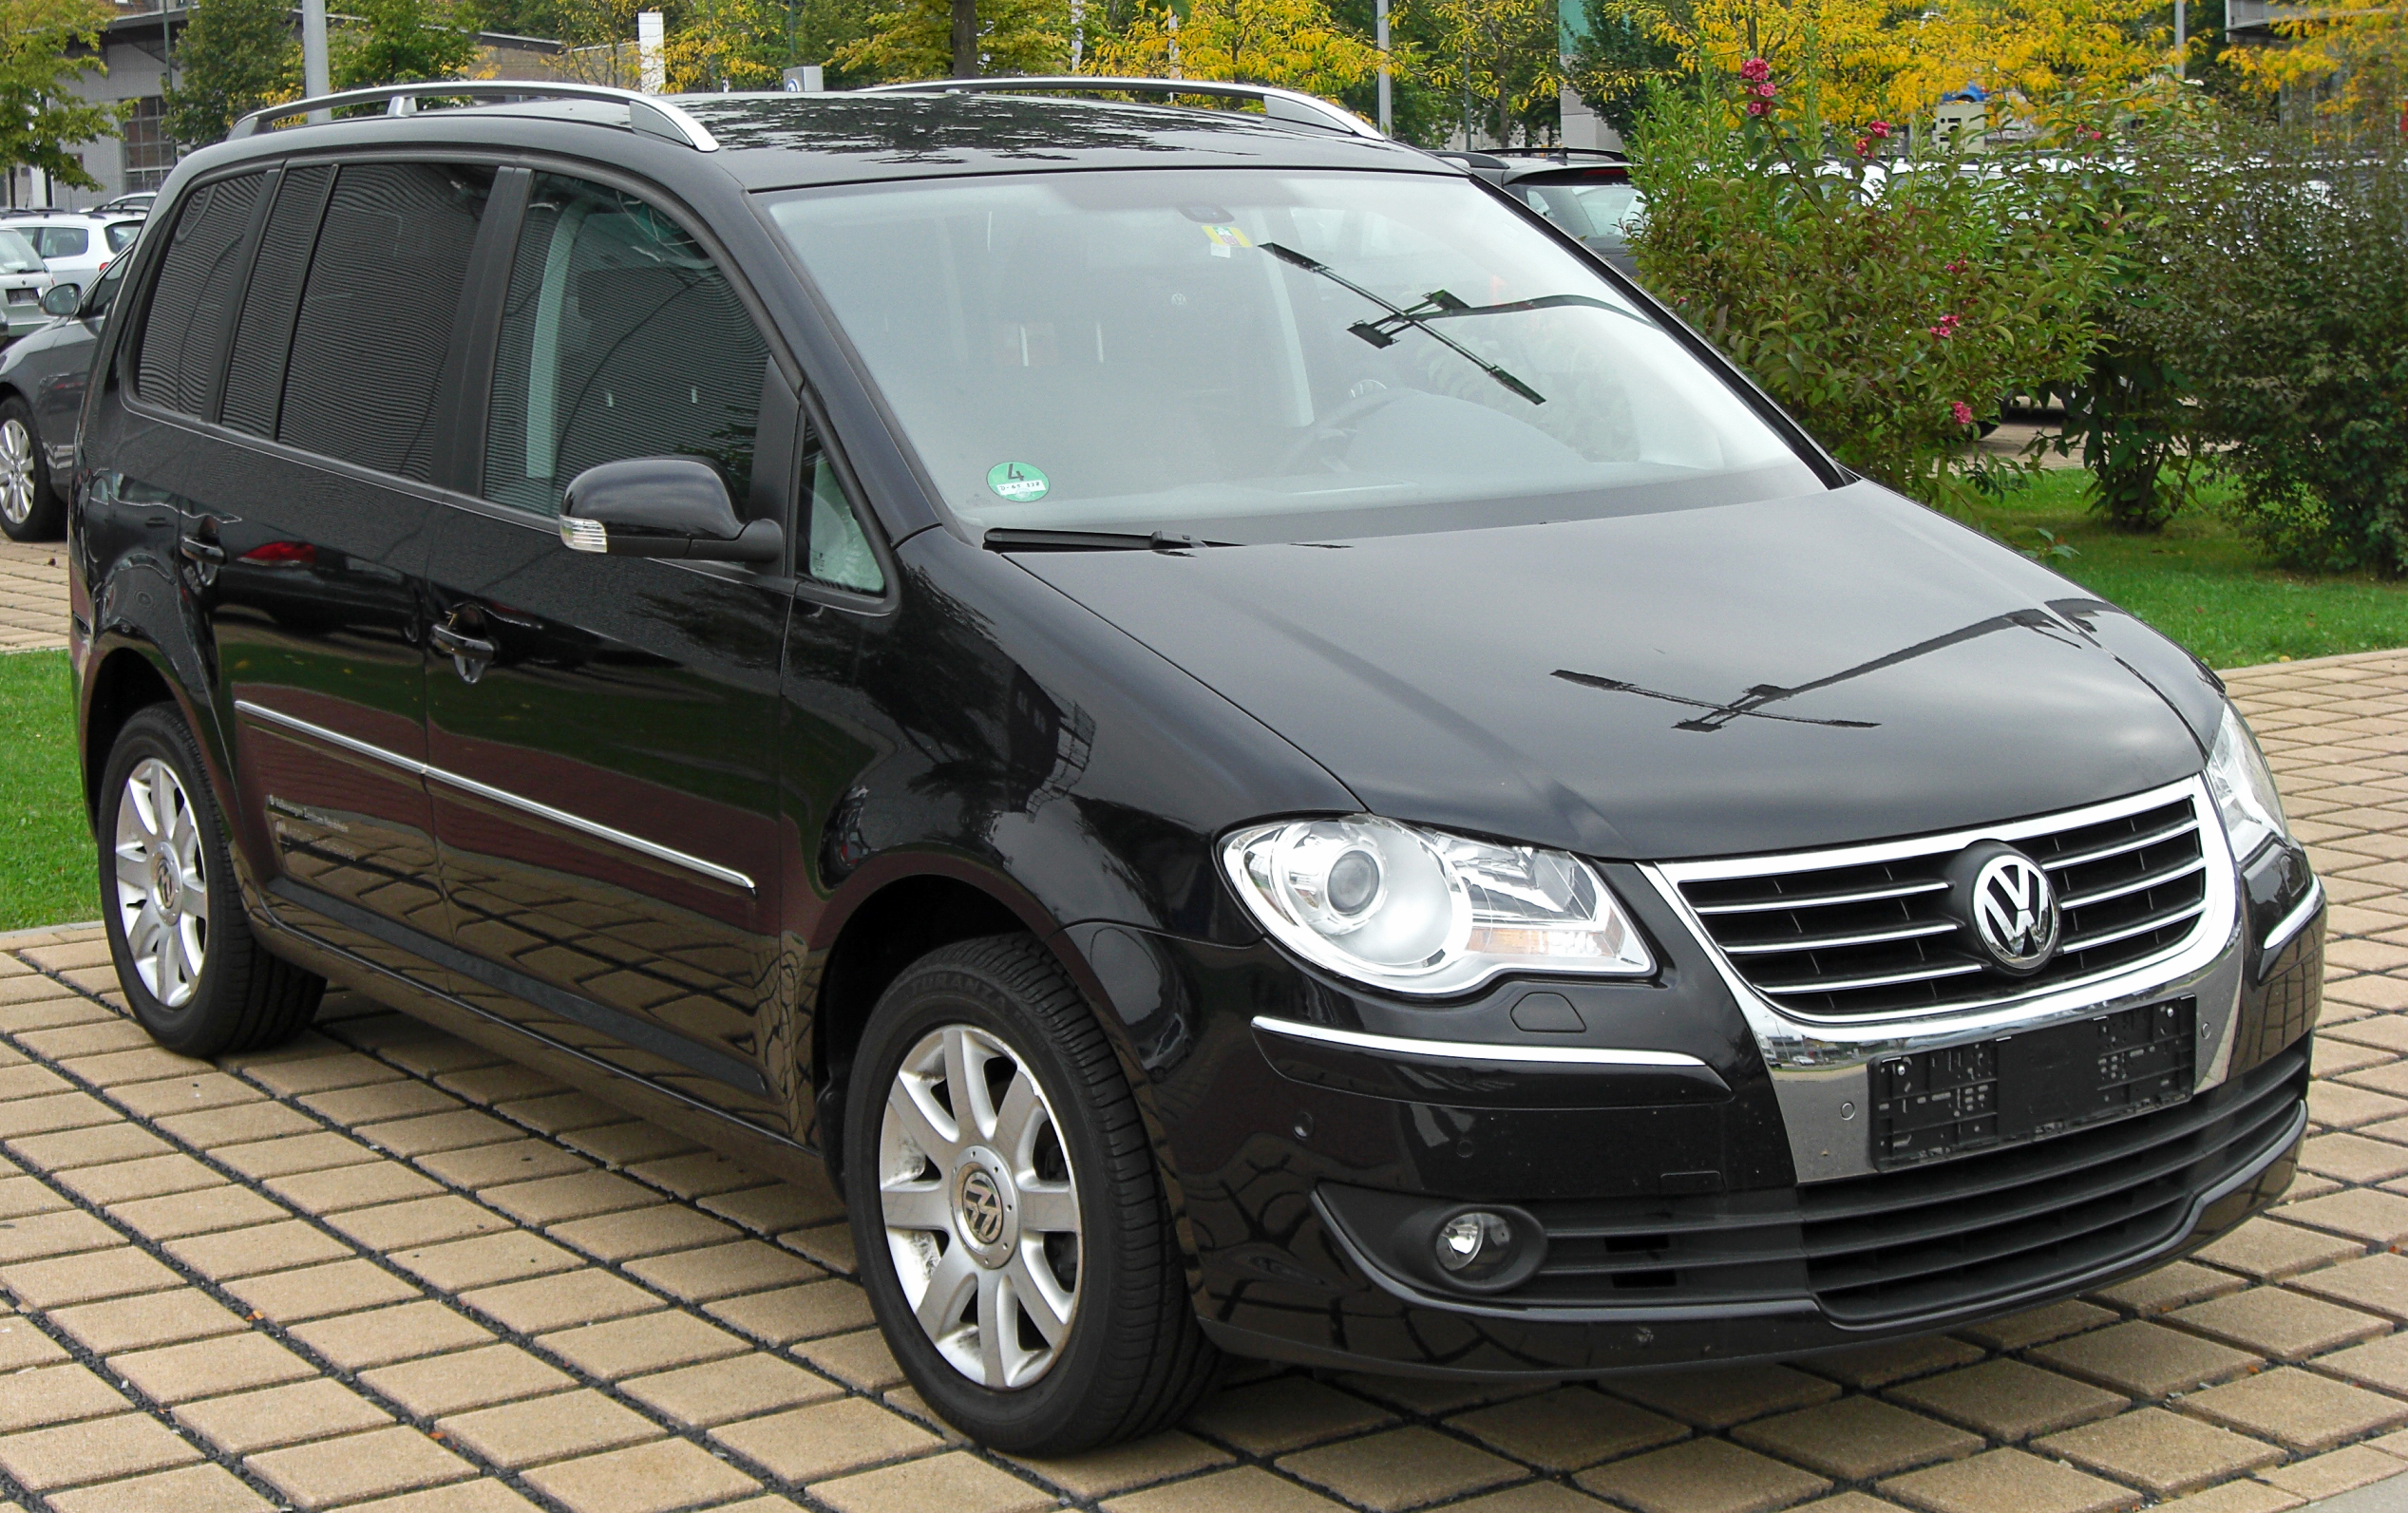 vw touran 20 tdi facelift front 1jpg pictures. Black Bedroom Furniture Sets. Home Design Ideas